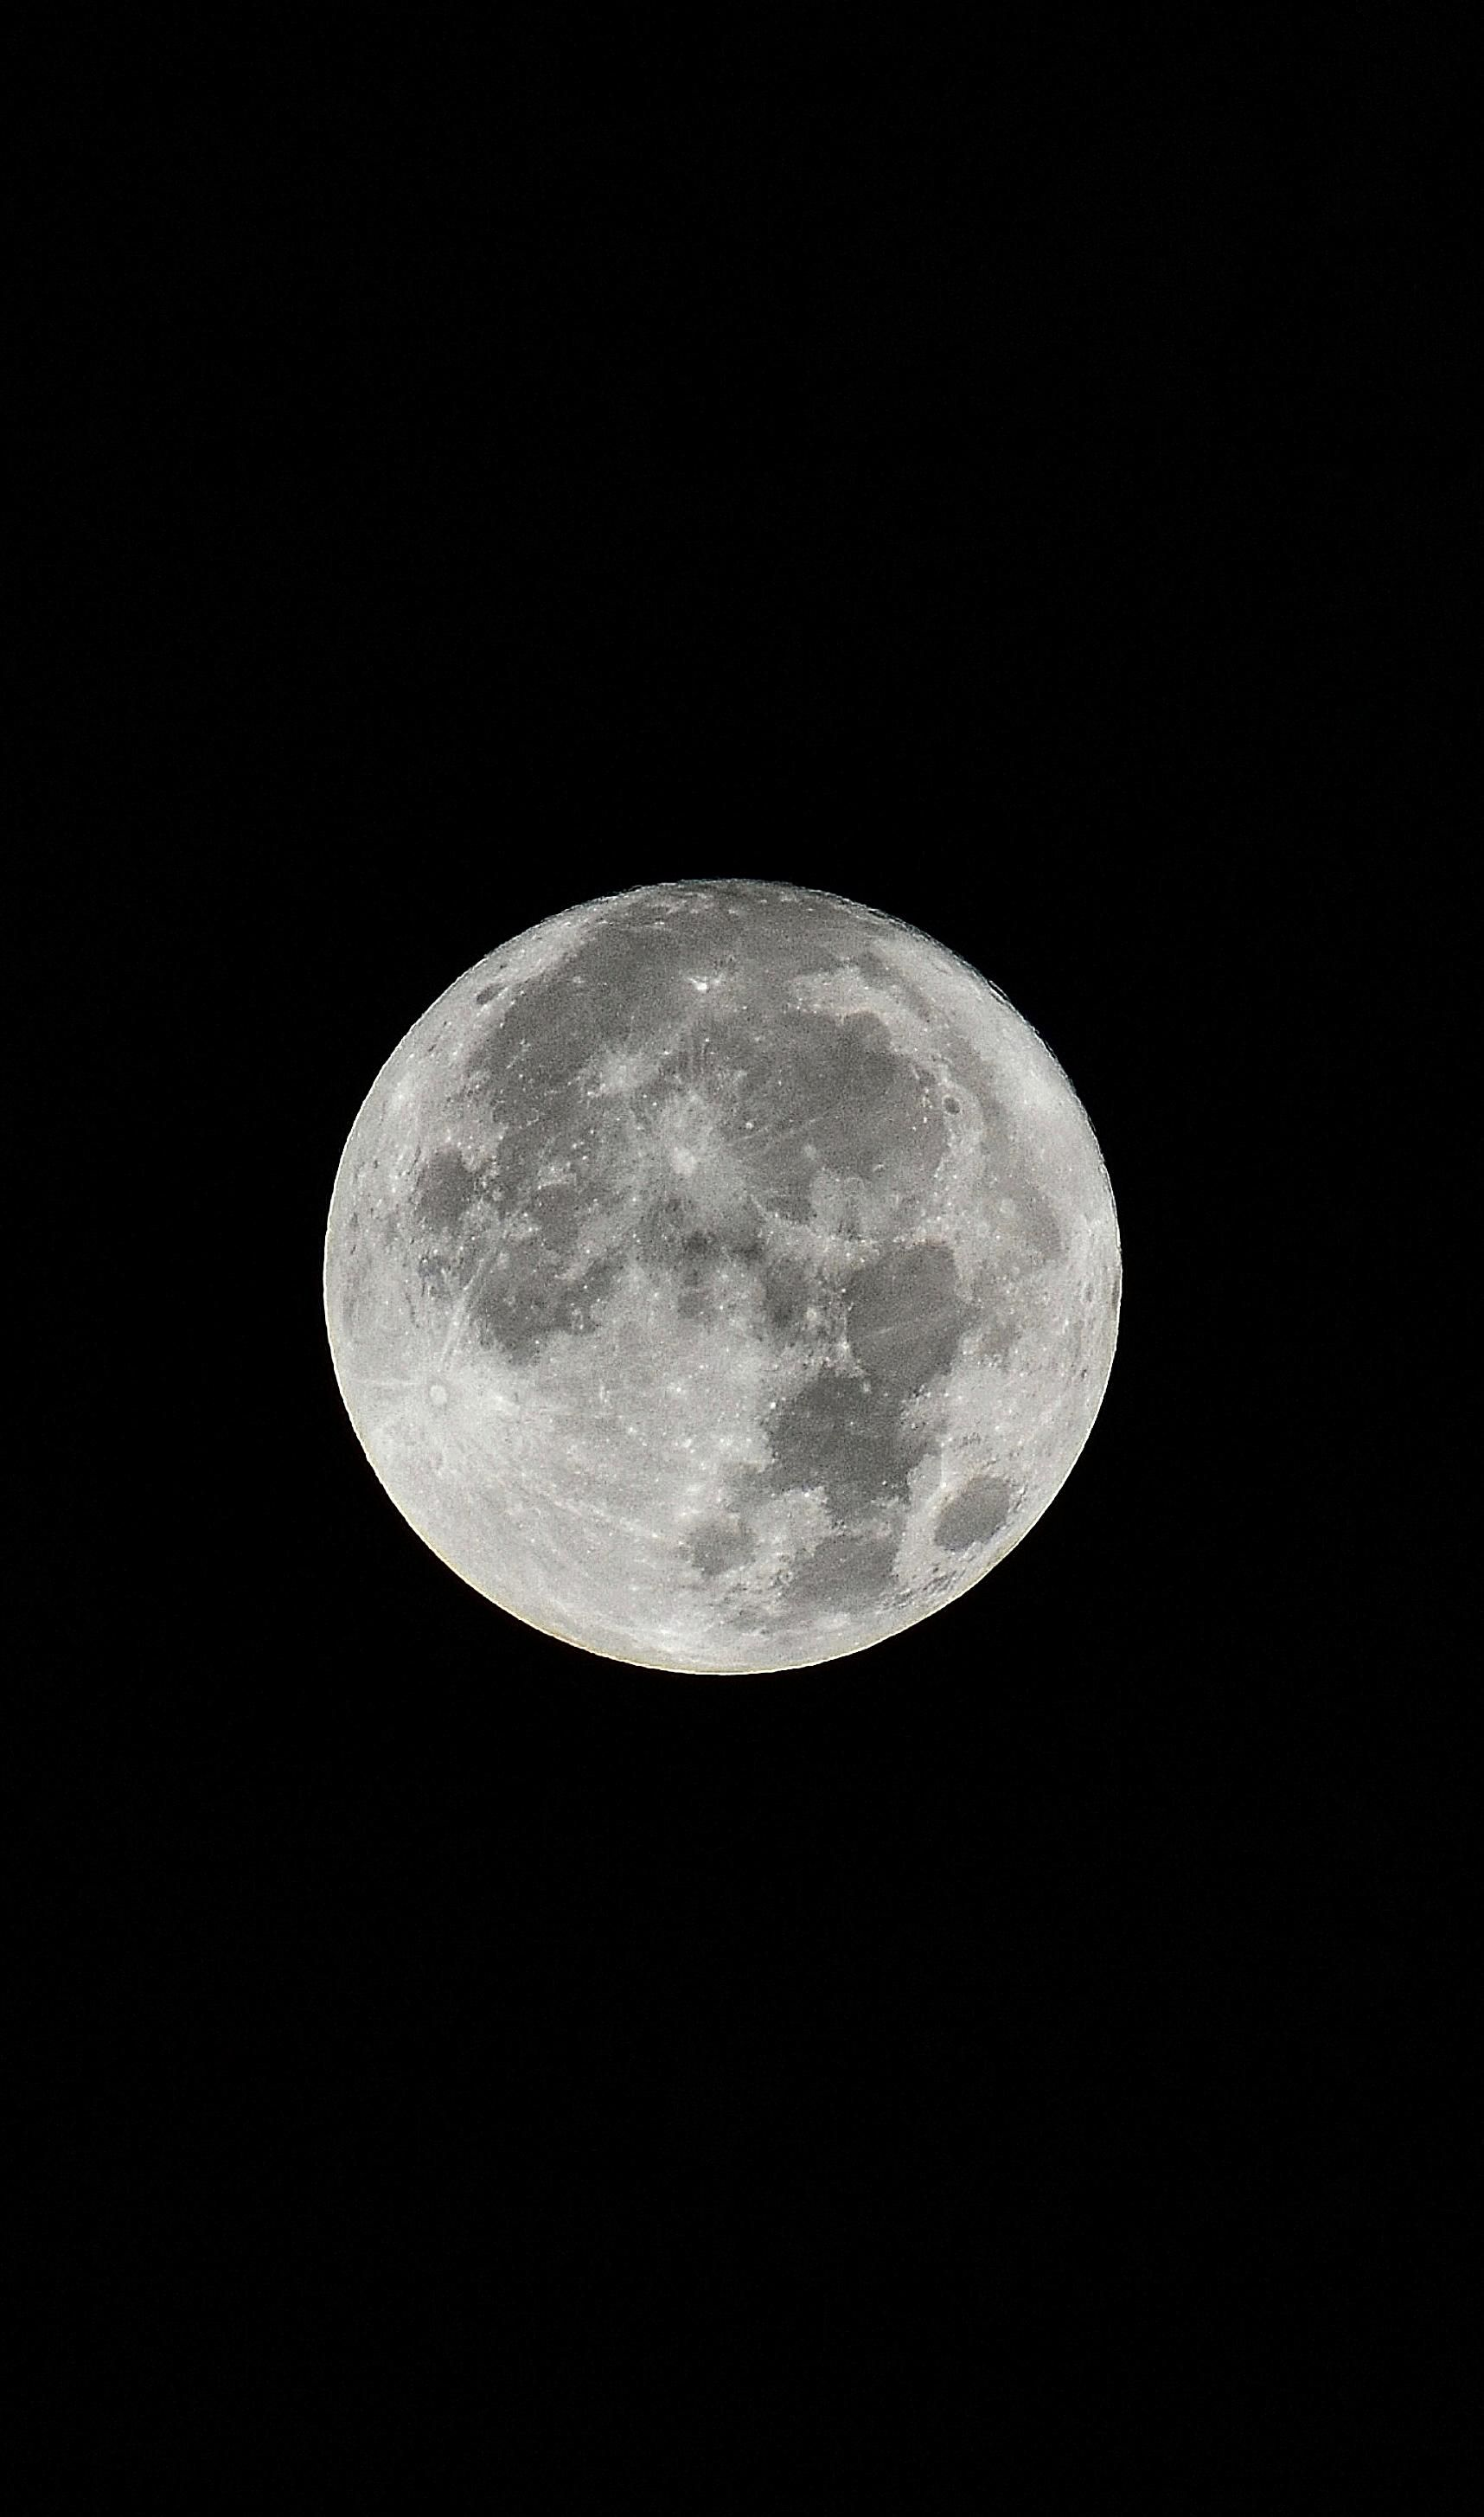 560+My shot of the Supermoon with a D3400 1716x2910